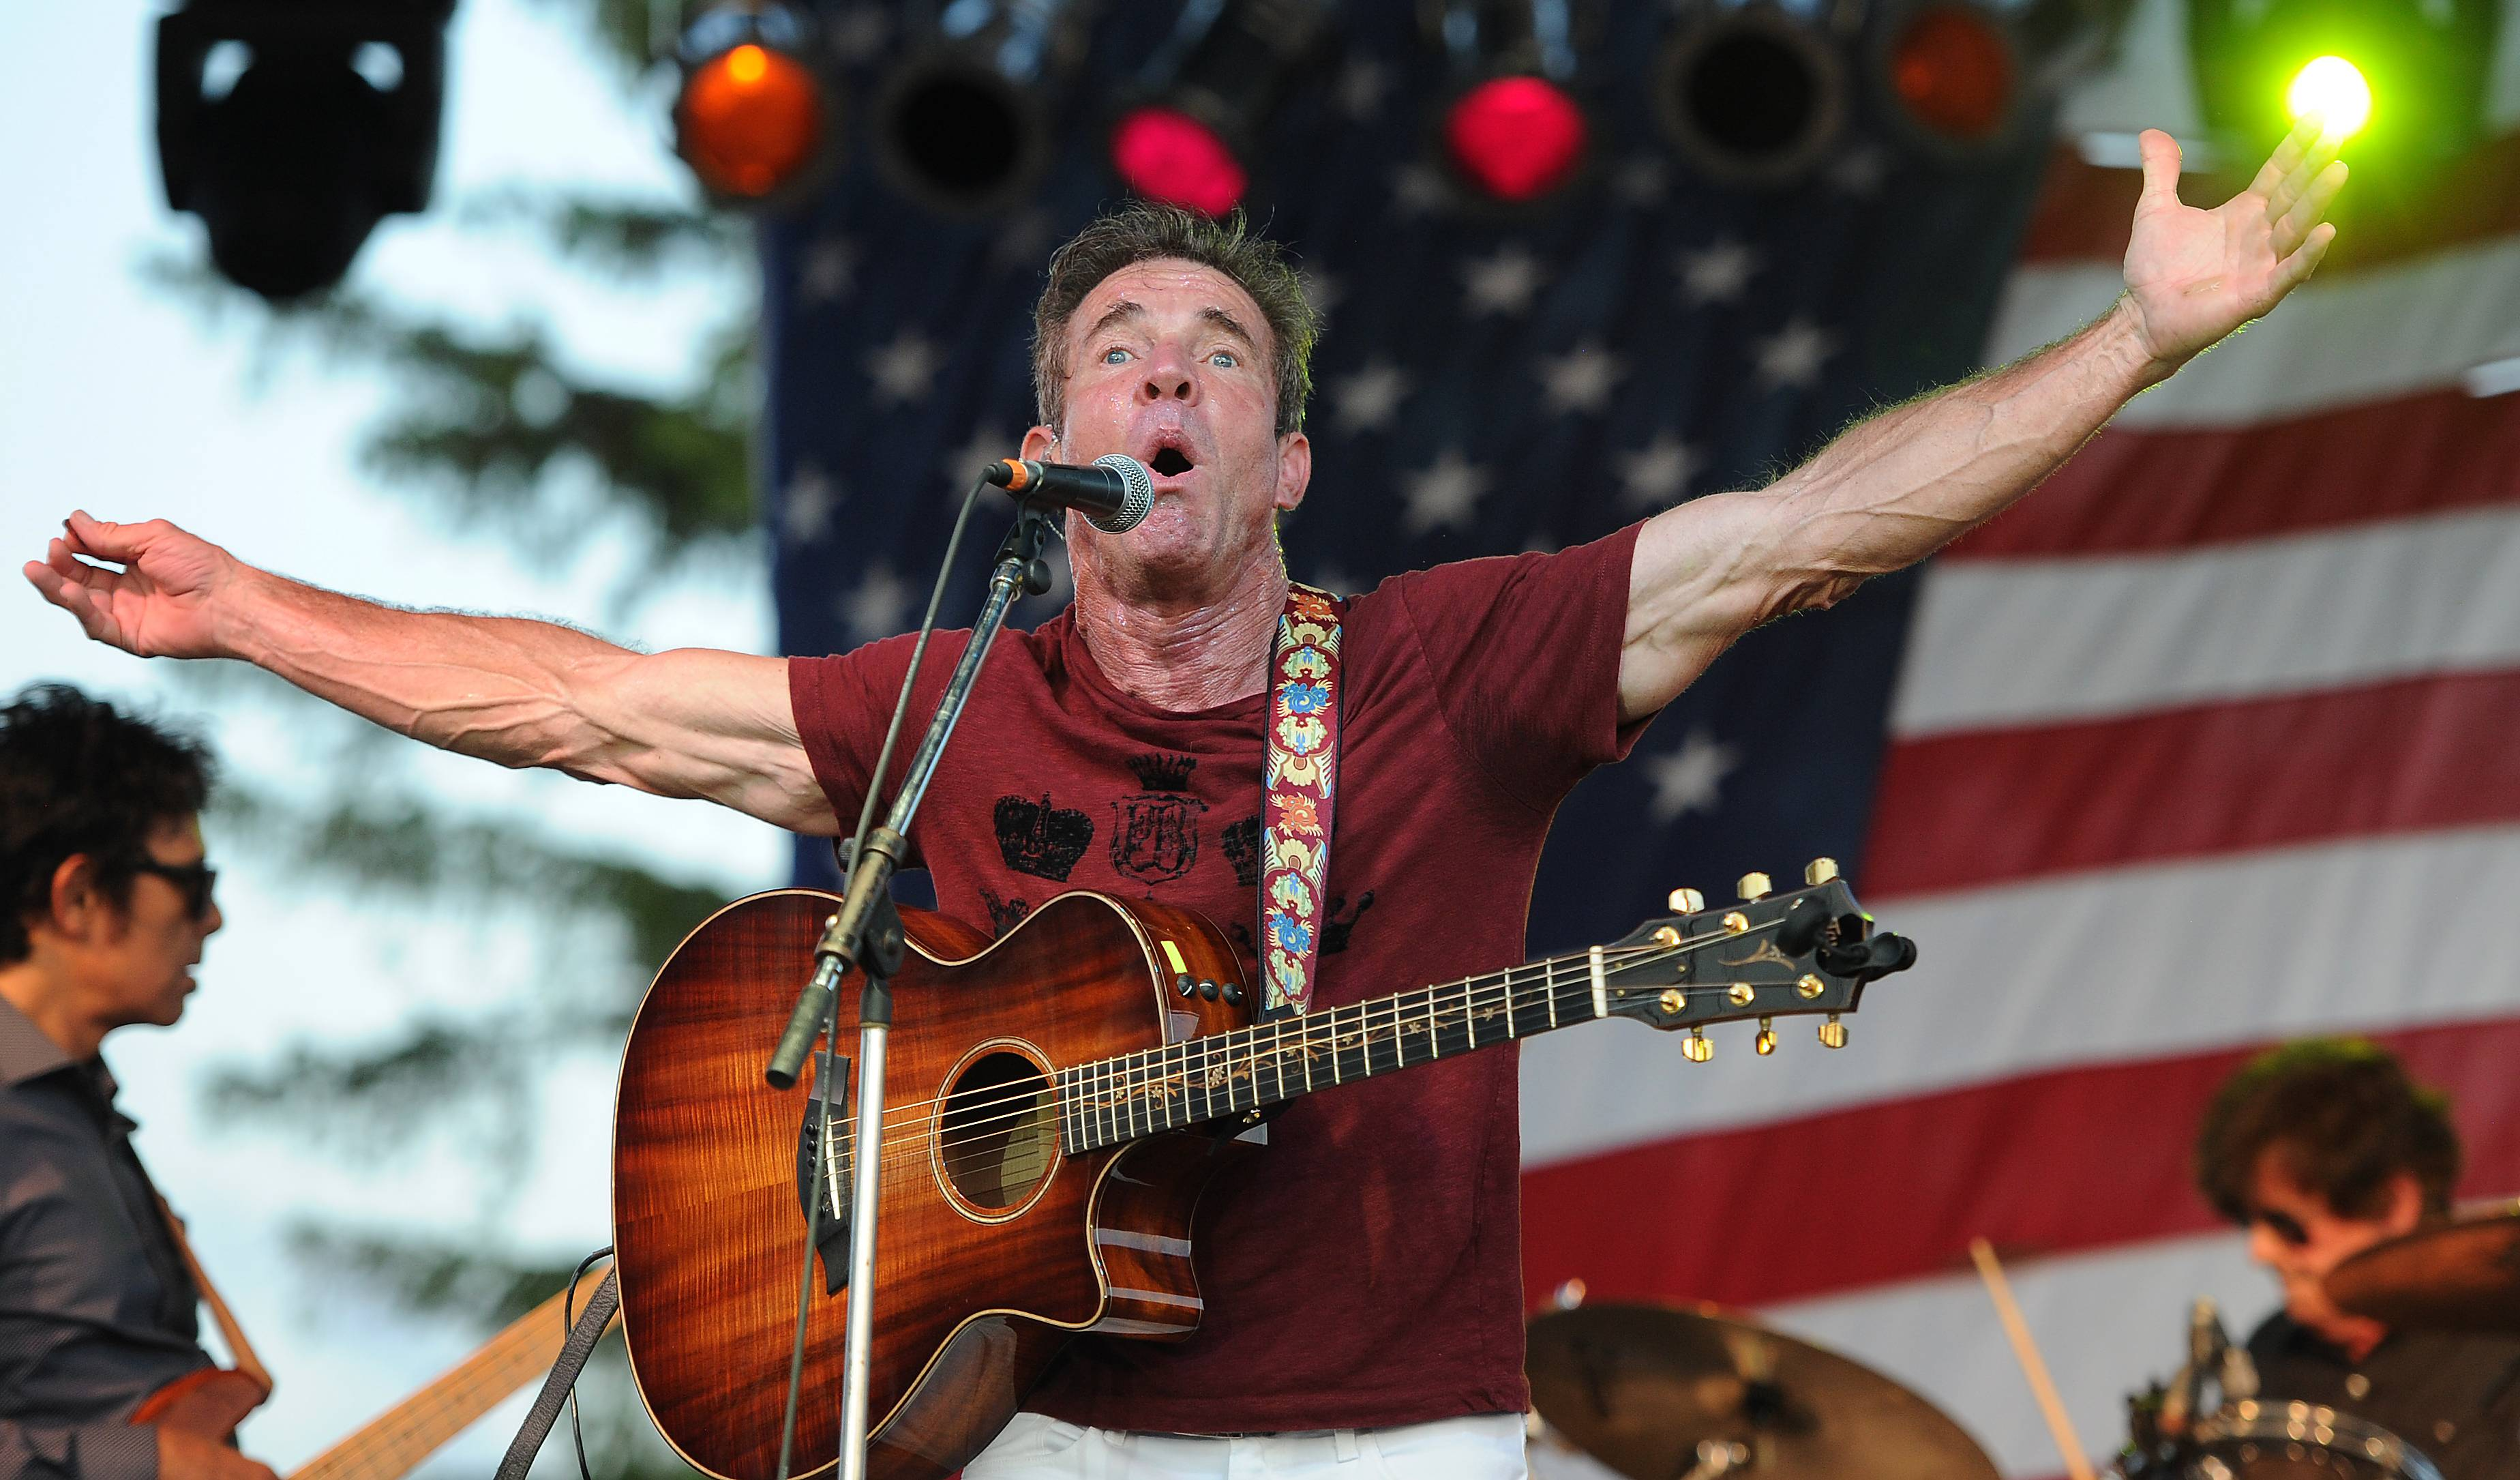 Actor and singer Dennis Quaid plays to a packed house at the Dennis Quaid and the Sharks concert to kick off Frontier Days in Arlington Heights on Friday.